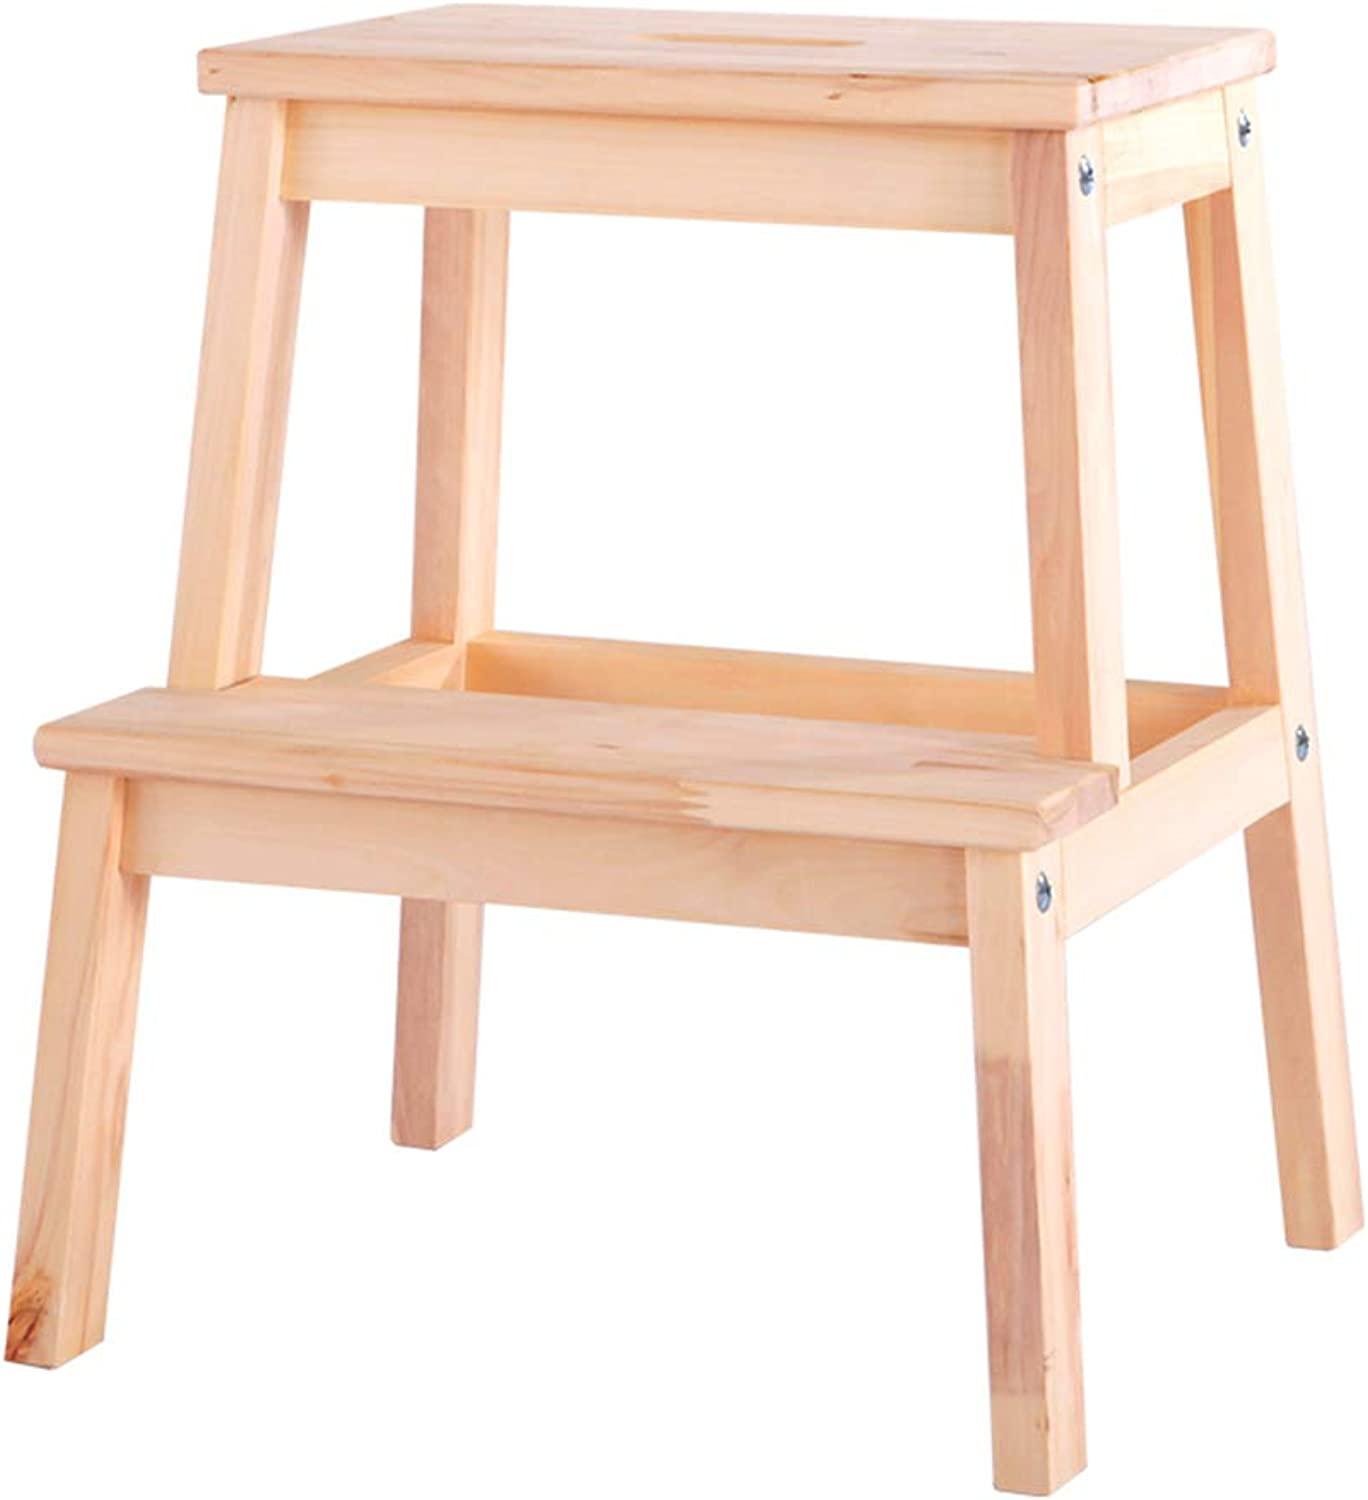 LIYONG Step Stool, Solid Wood Climbing Ladder, shoes Bench, Home Flower Shelf (color   A)